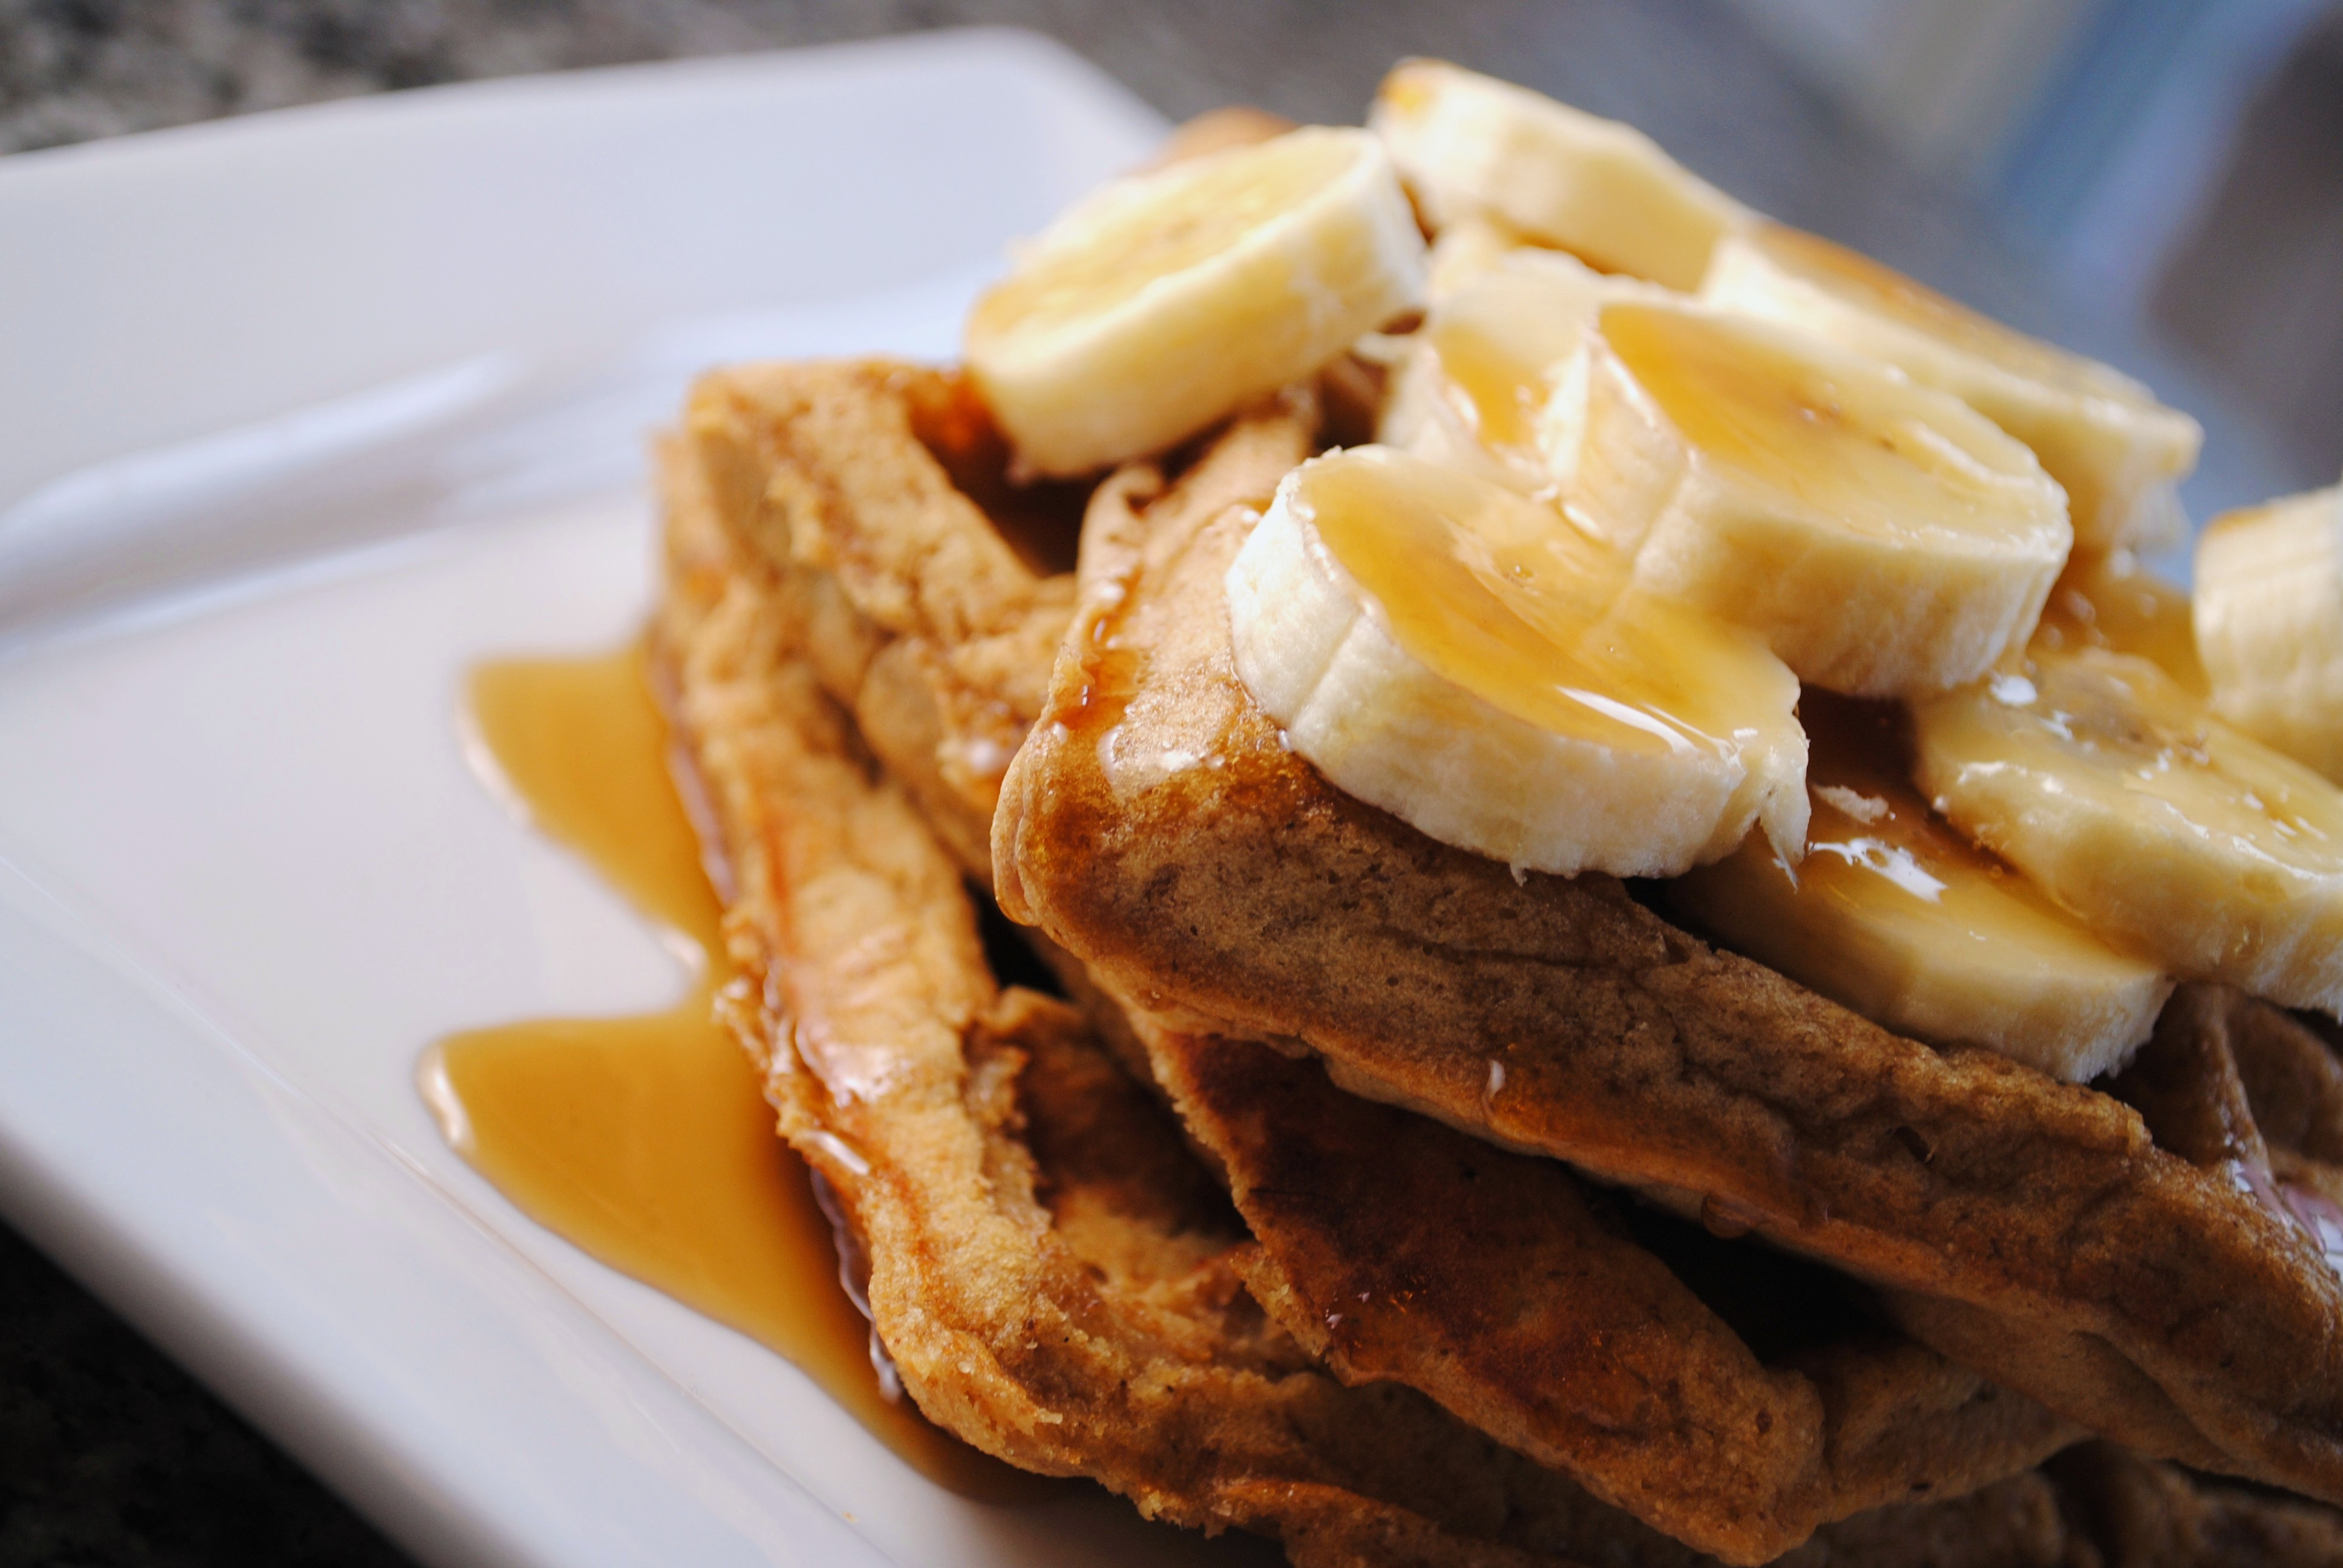 ... Season of Curious George with Banana Sour Cream Waffles - Sweet Life